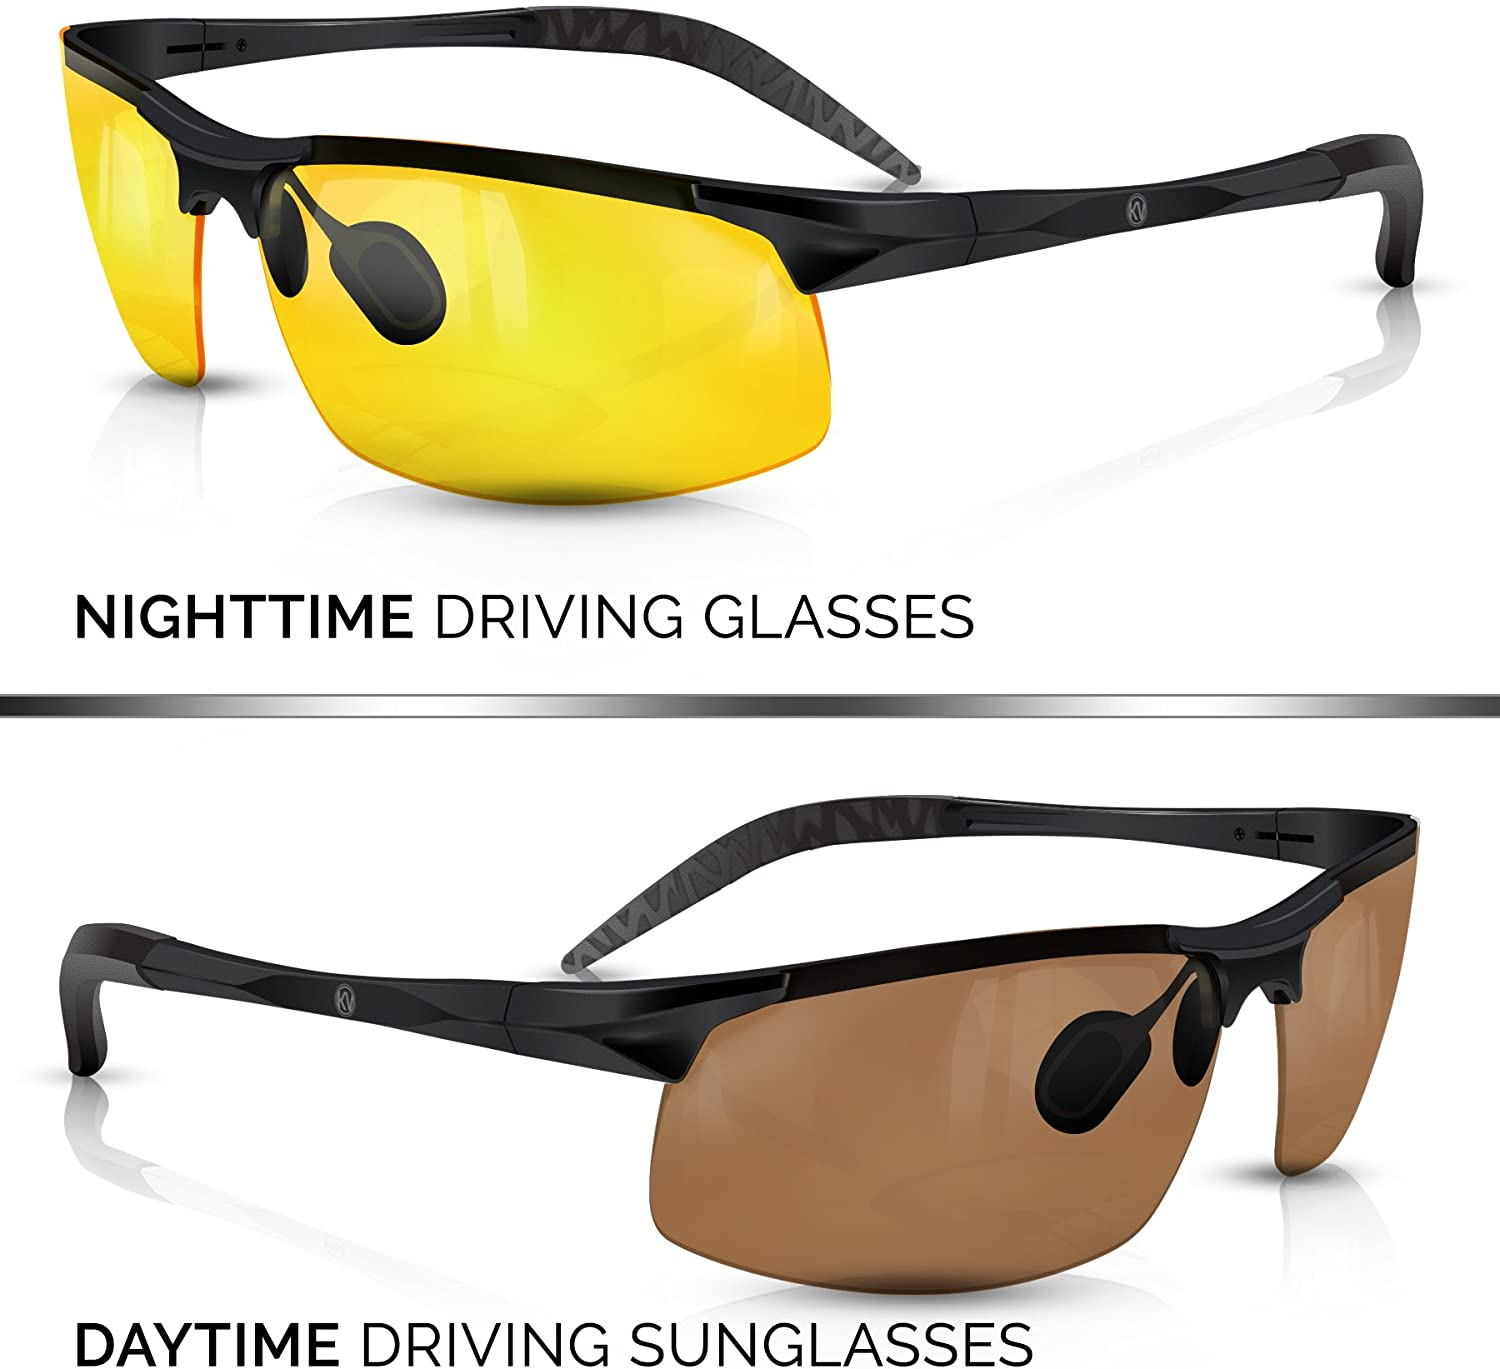 BLUPOND Set of 2 Anti-Glare HD Lens Clear Vision Sunglasses - Daytime Polarized Copper and Yellow Tint Night Driving Glasses with CAR Clip Holder - Knight Visor